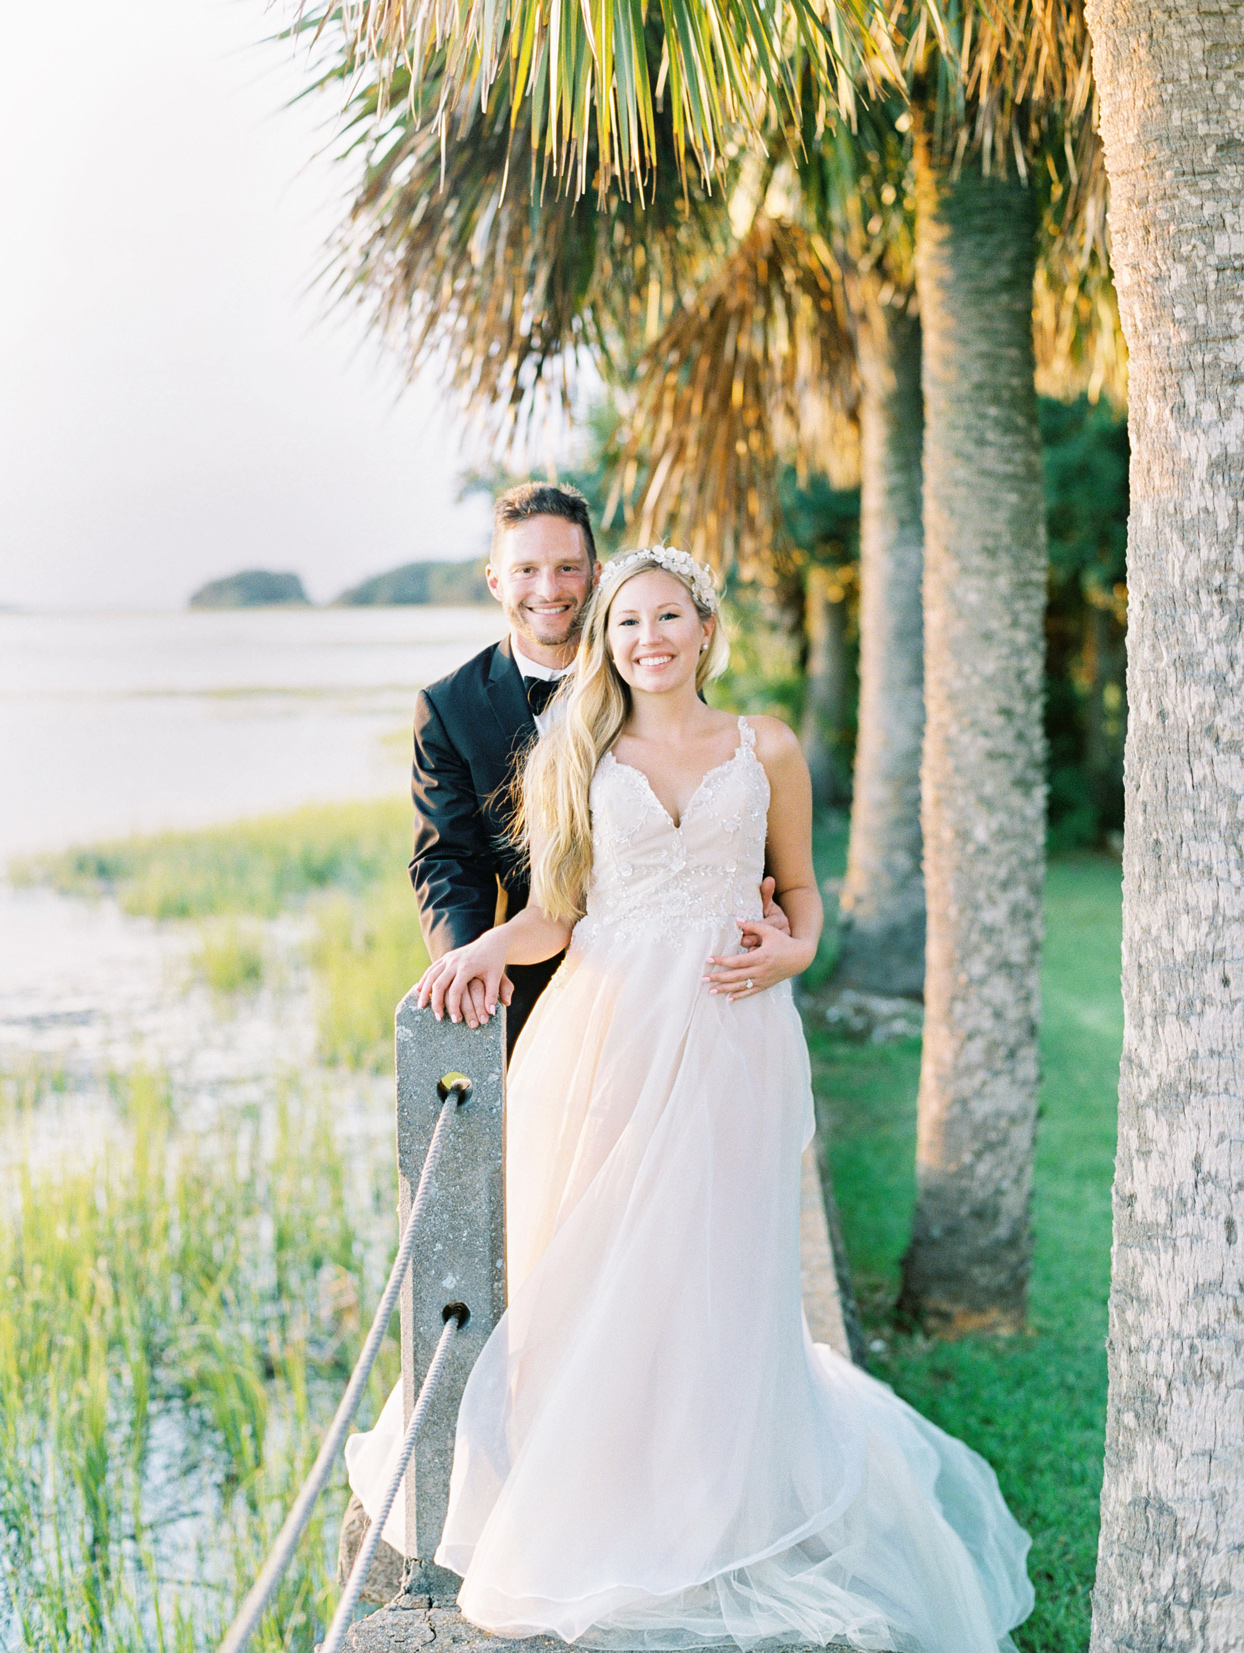 bride and groom posing in front of palm trees